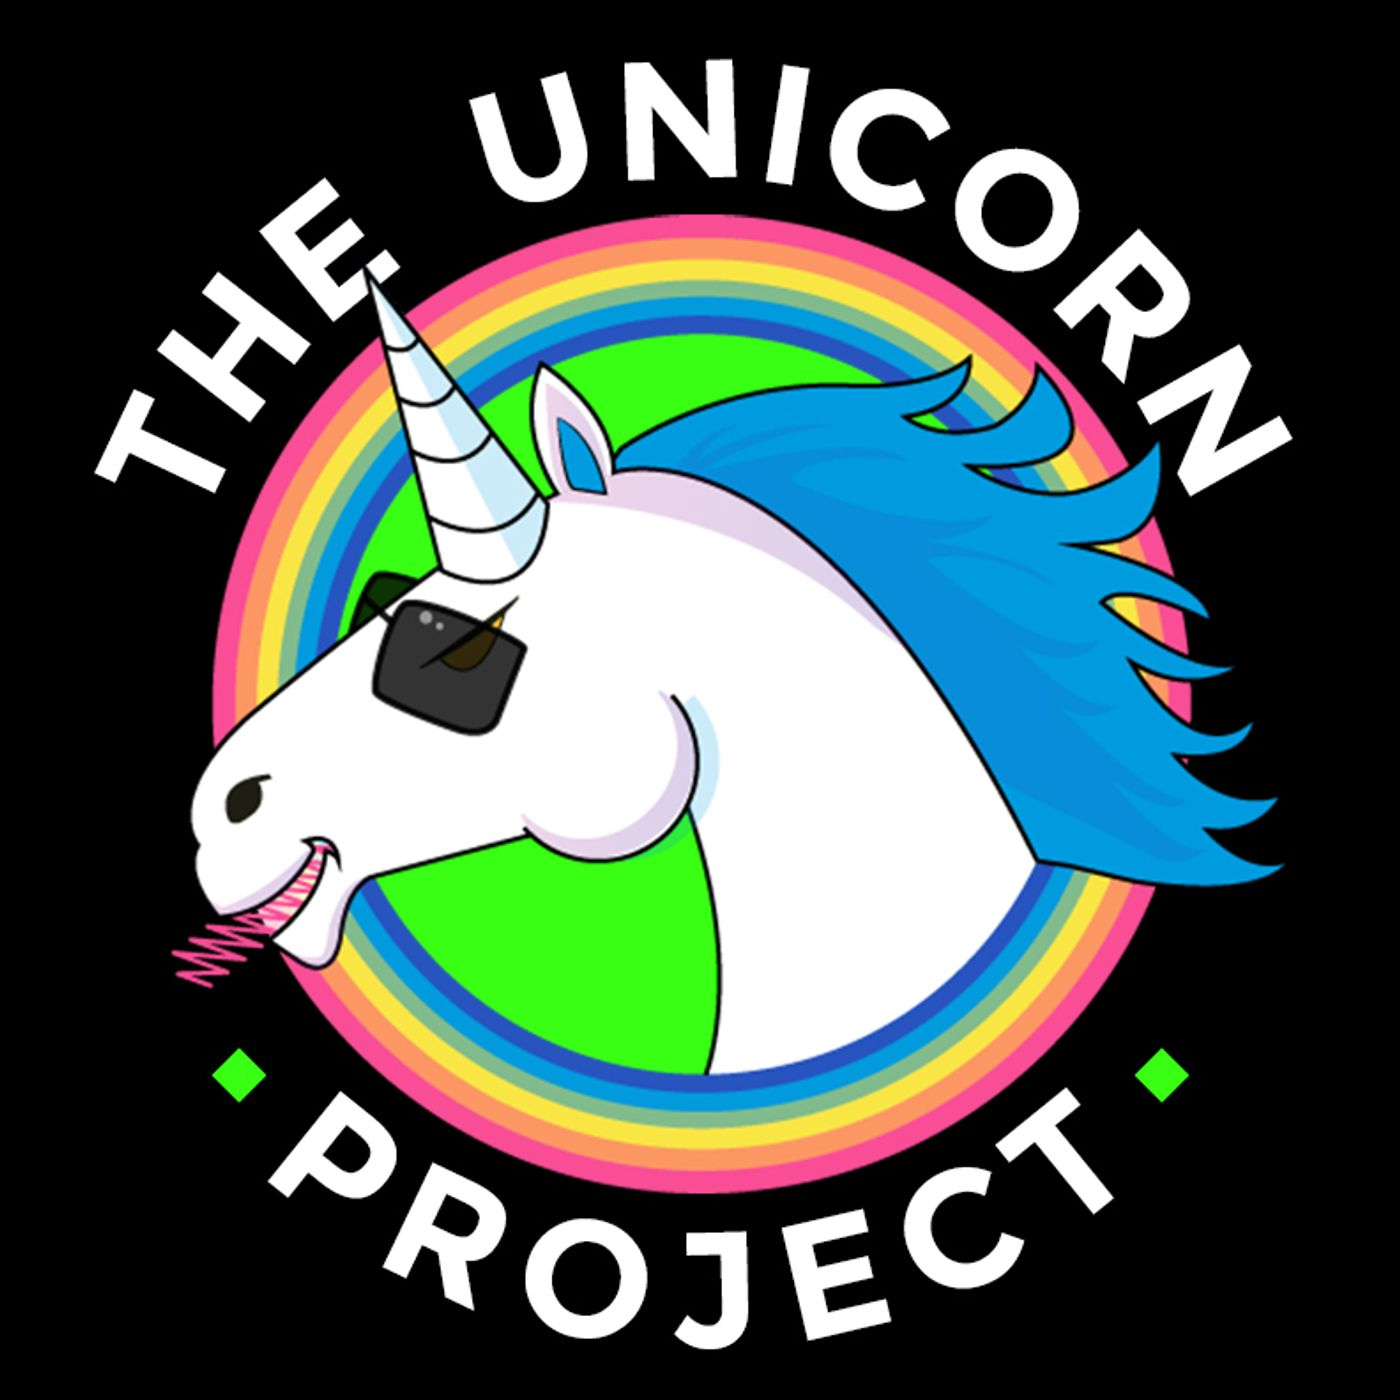 The Unicorn Project in Bahasa Indonesia